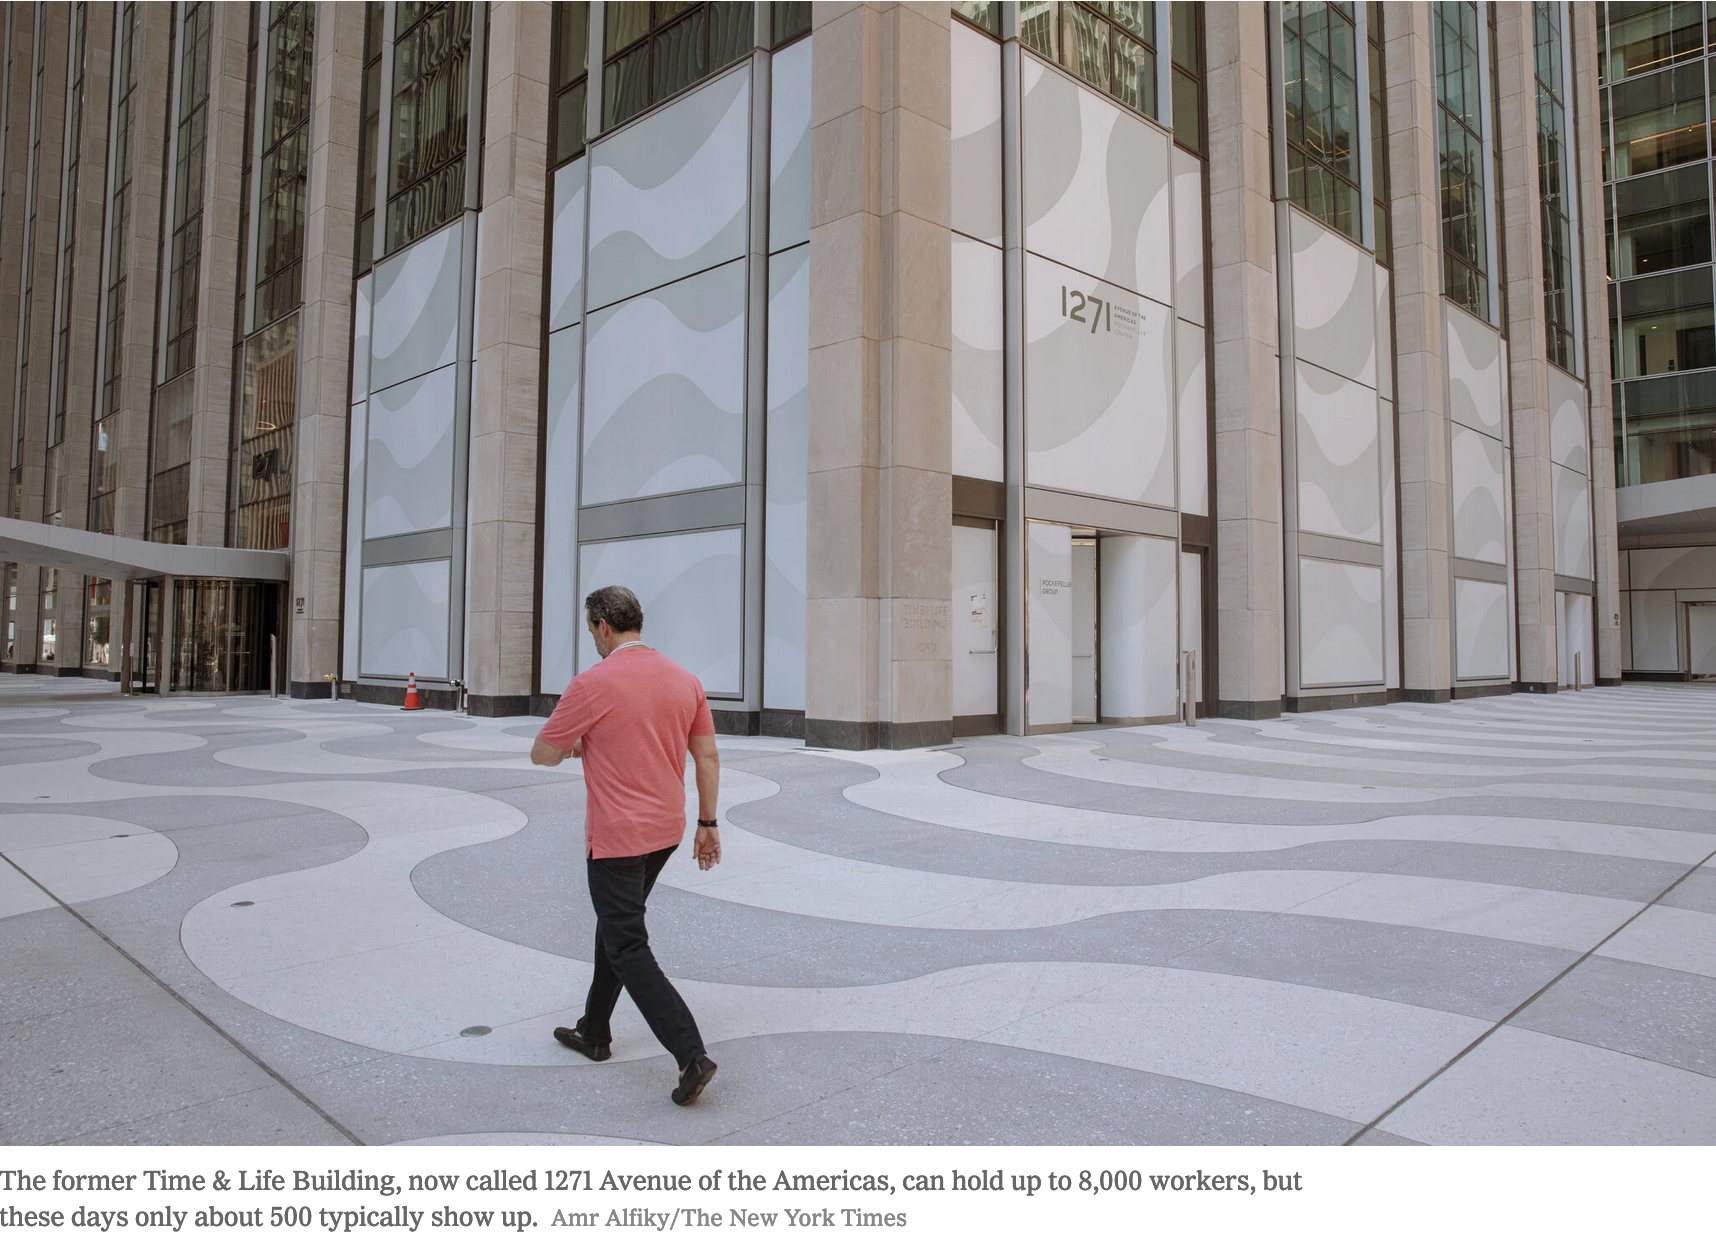 The Virus Turns Midtown Into a Ghost Town Causing an Economic Crisis